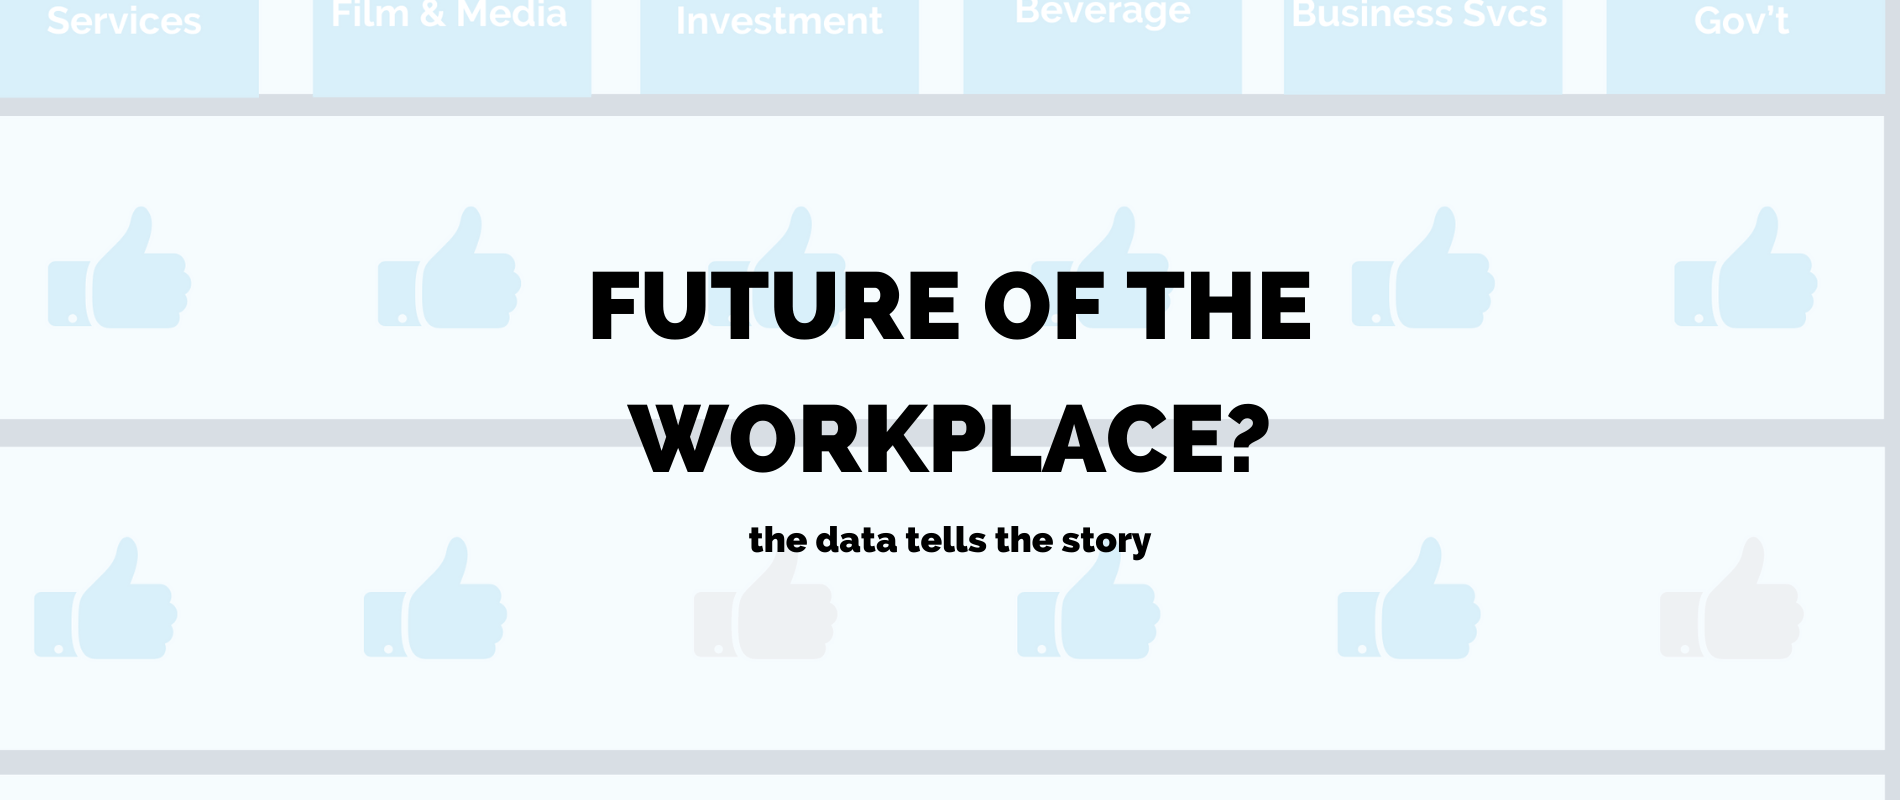 Rethink the workplace: How are we going to use the future office?